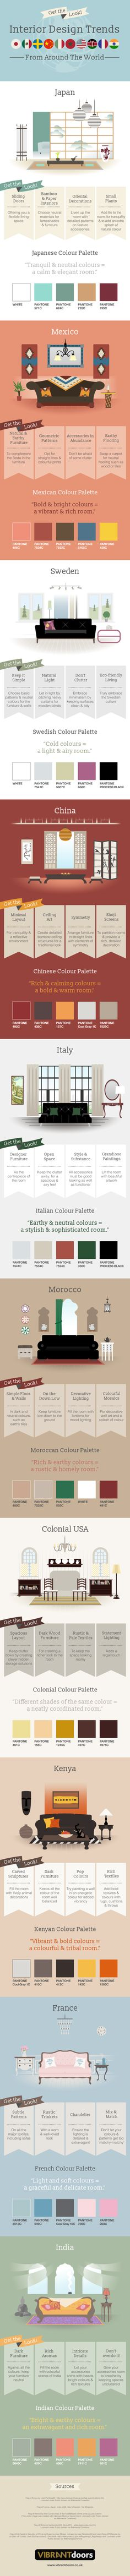 Interior Design Trends From All Around The World - Tipsographic